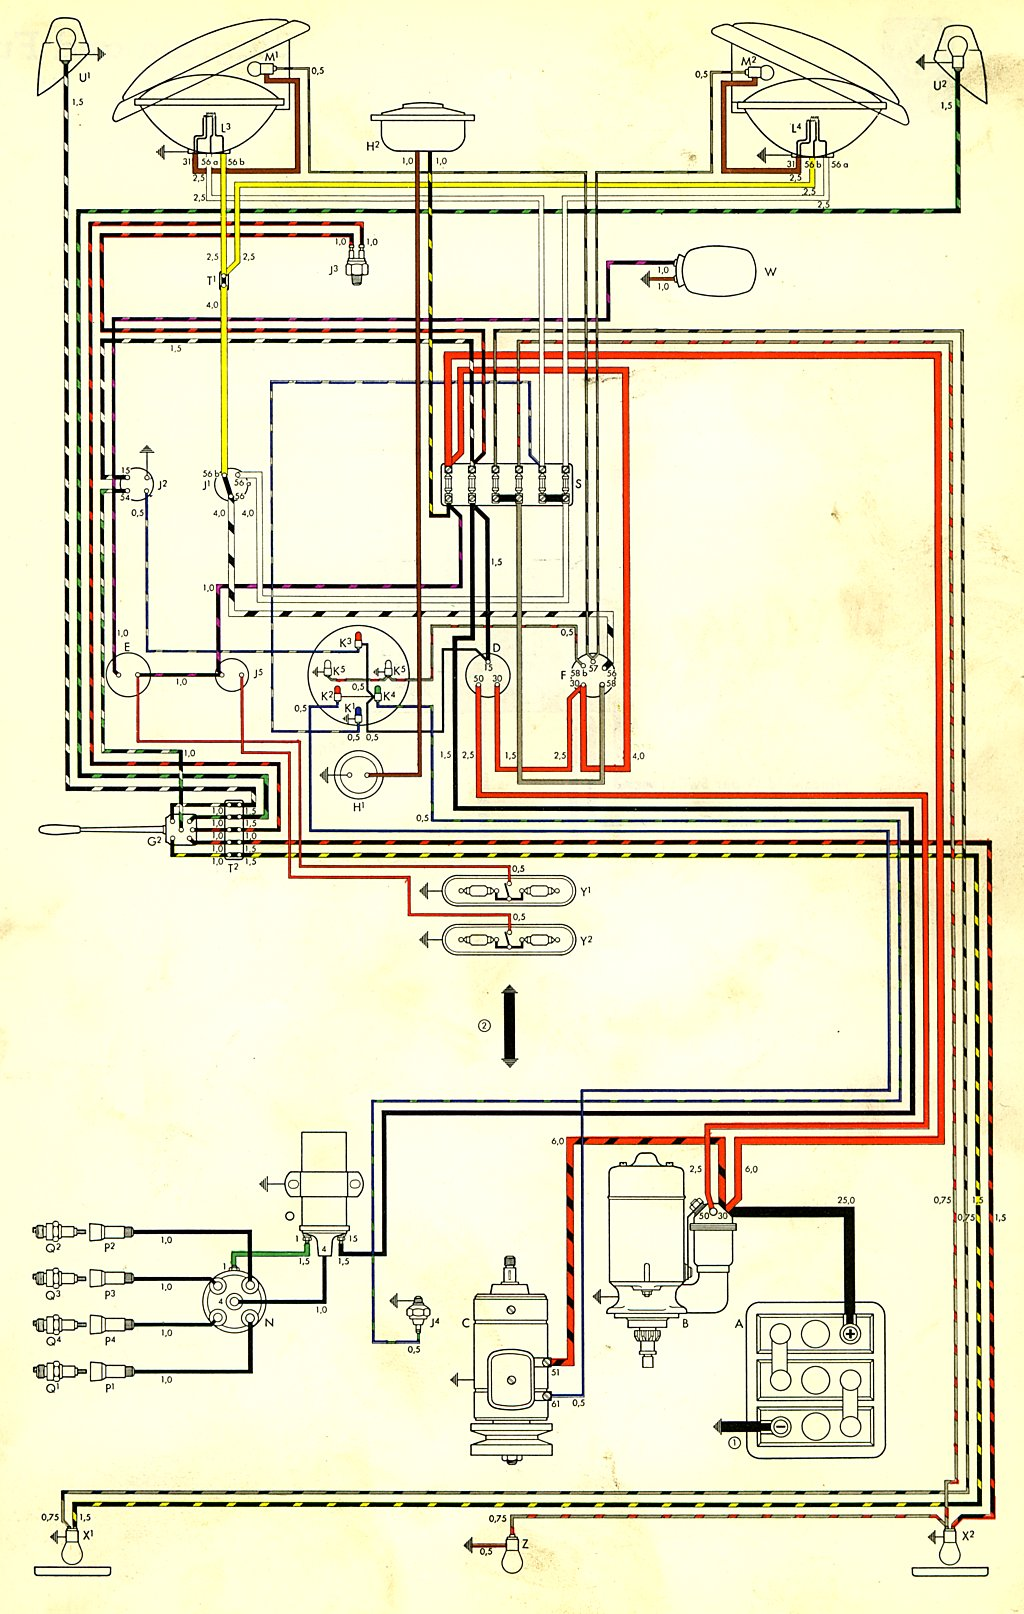 70 Vw Wiring Diagram | Wiring Diagram 2019  Vw Wiring Diagram on 1971 vw super beetle starter diagram, 70 vw beetle, 70 vw chassis, 70 vw engine, bay window diagram, 1968 vw beetle speedometer diagram, 1970 vw electrical diagram, 74 super beetle front end diagram, vw type 3 engine diagram, vw beetle fuse box diagram, 2nd gen eclipse alternator diagram,